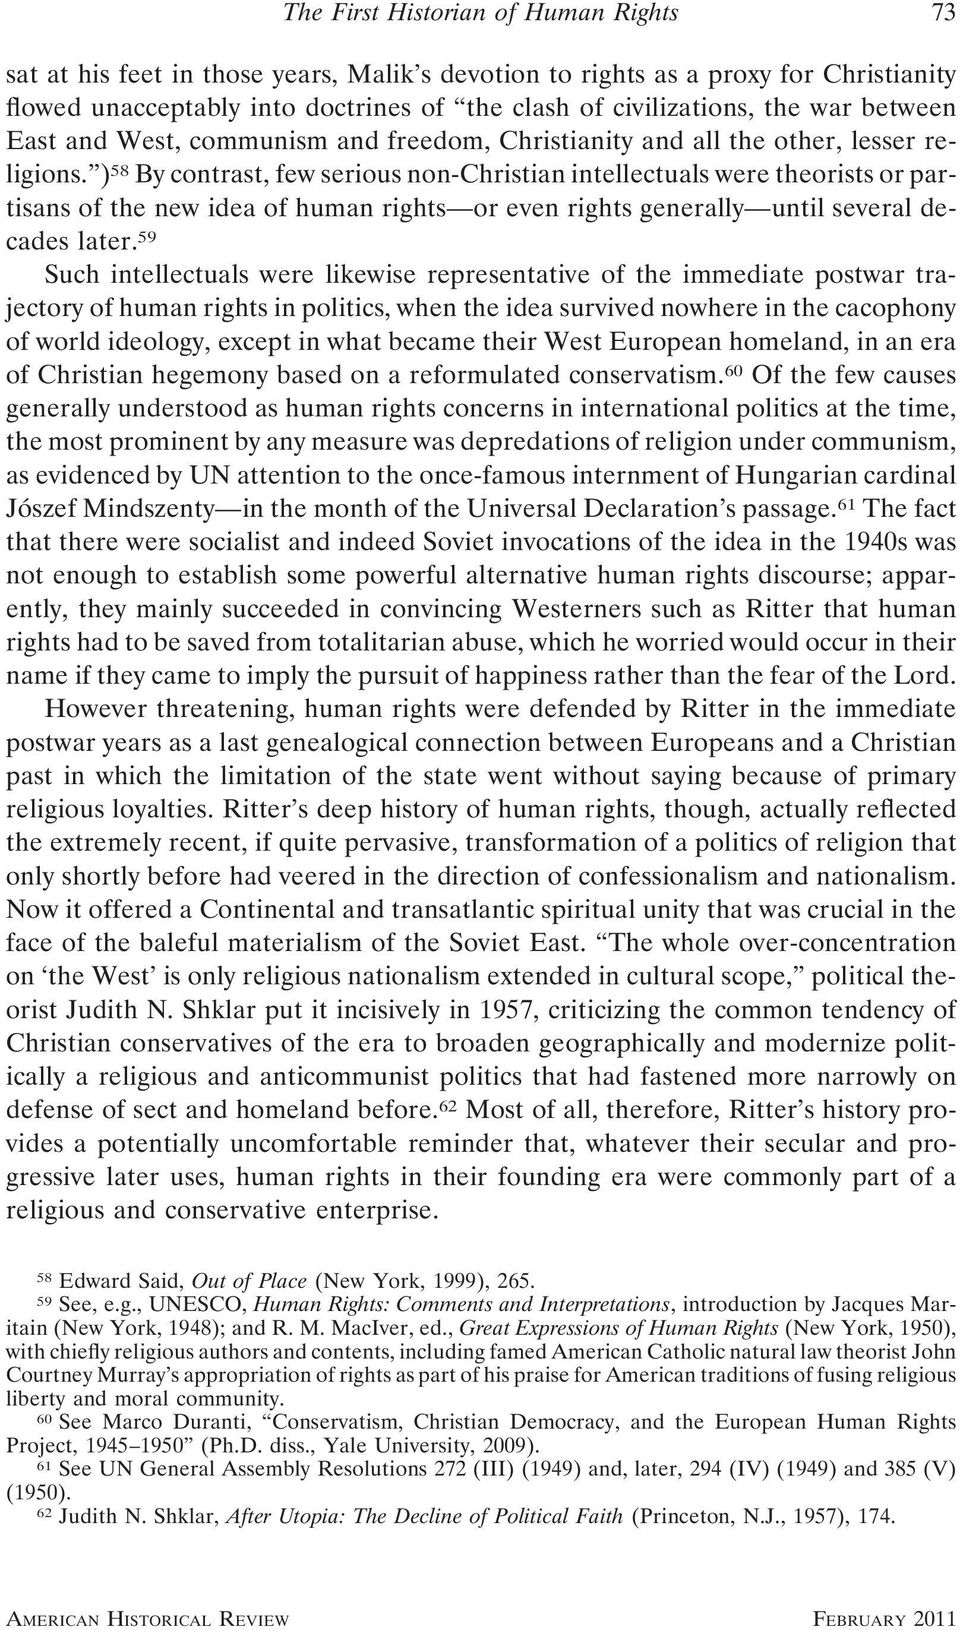 ) 58 By contrast, few serious non-christian intellectuals were theorists or partisans of the new idea of human rights or even rights generally until several decades later.